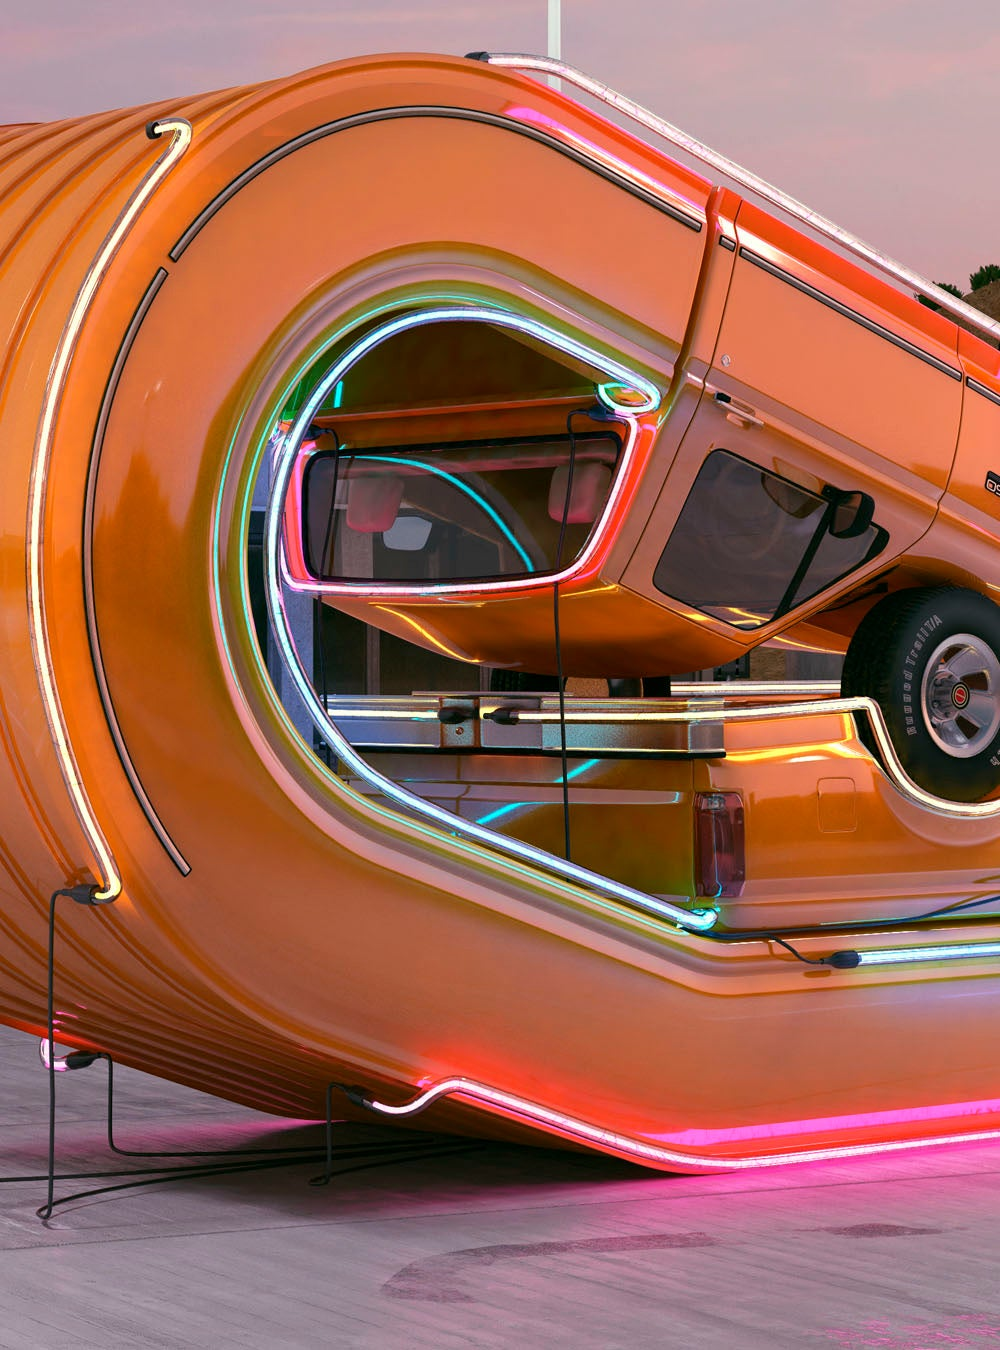 Cool renders of trucks bending beyond the laws of physics